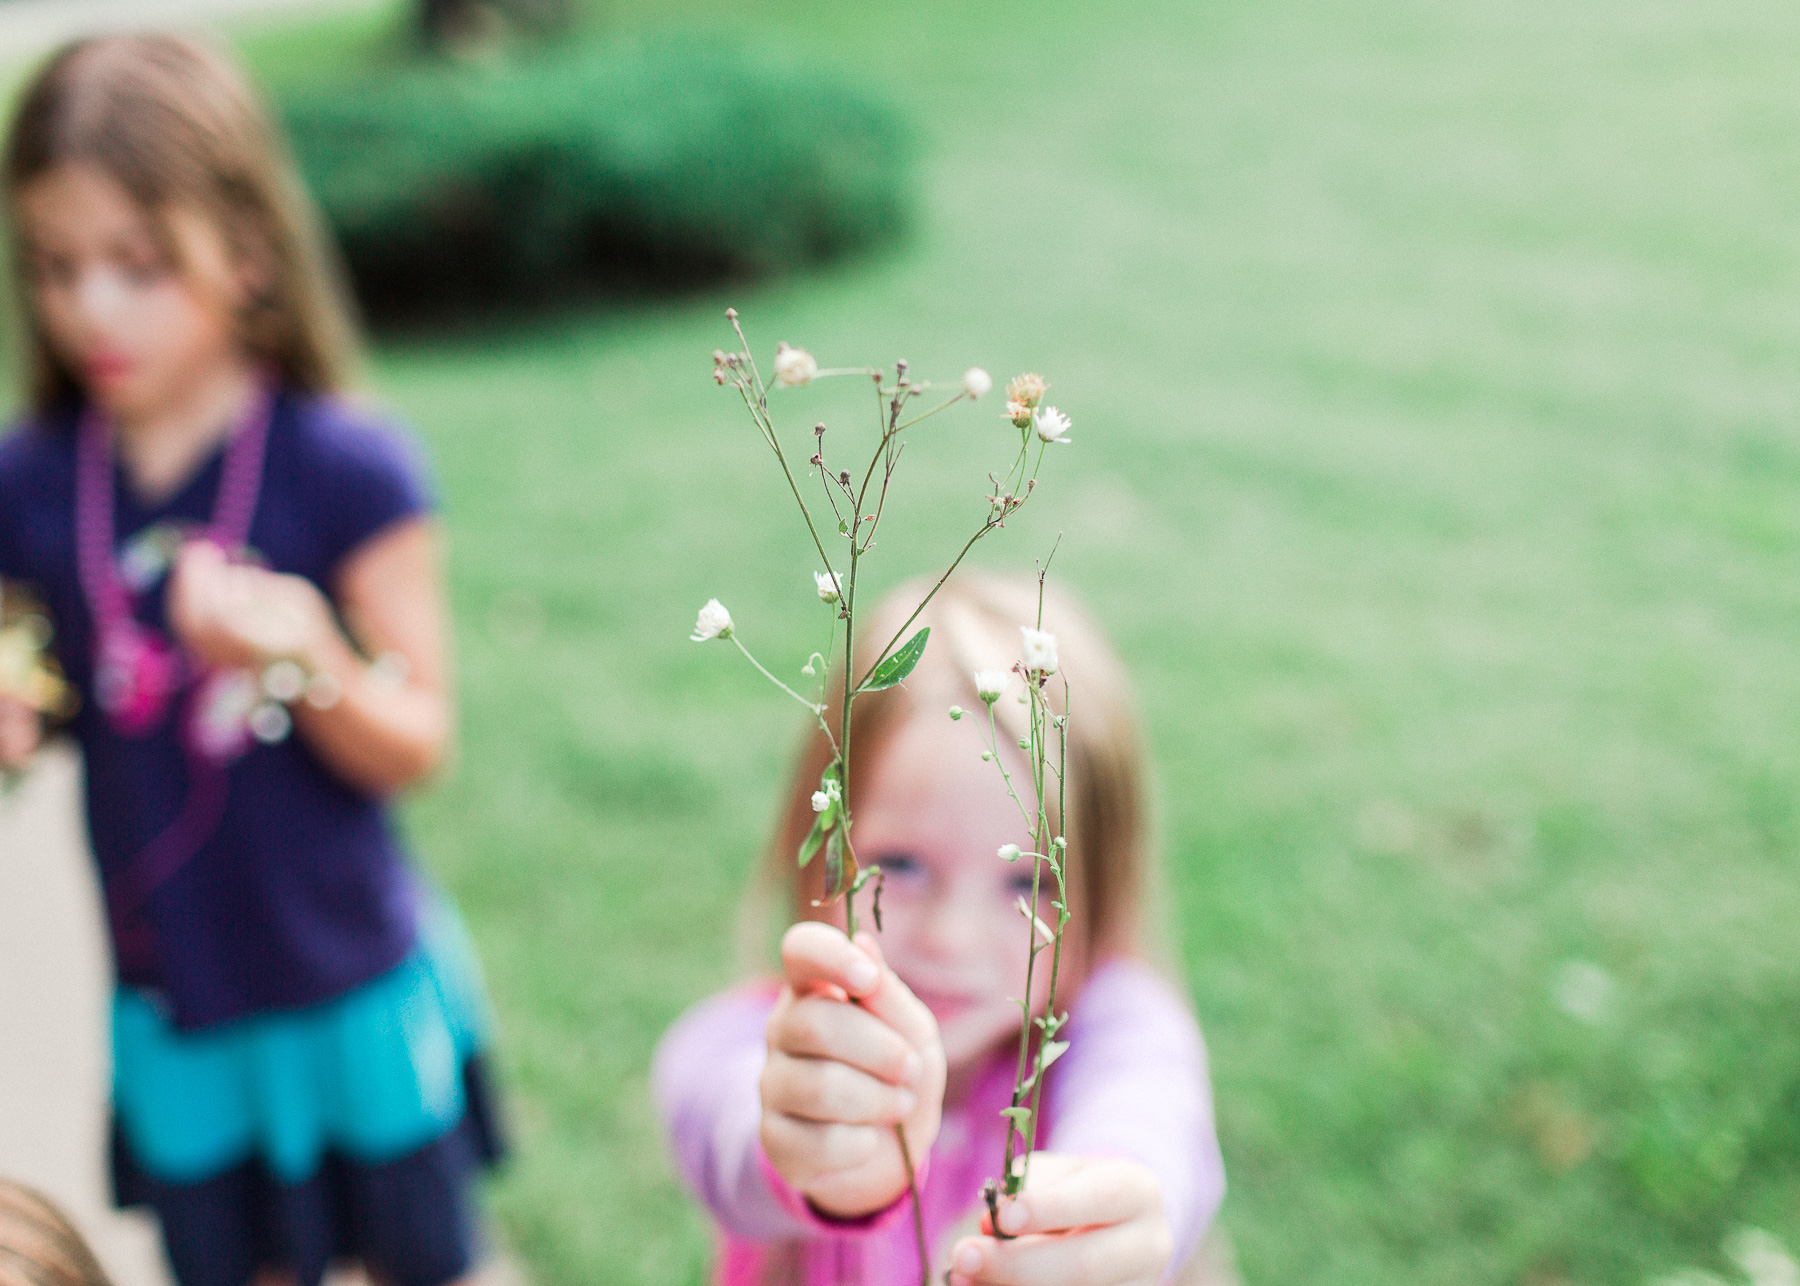 homeschooling daughter holding flowers